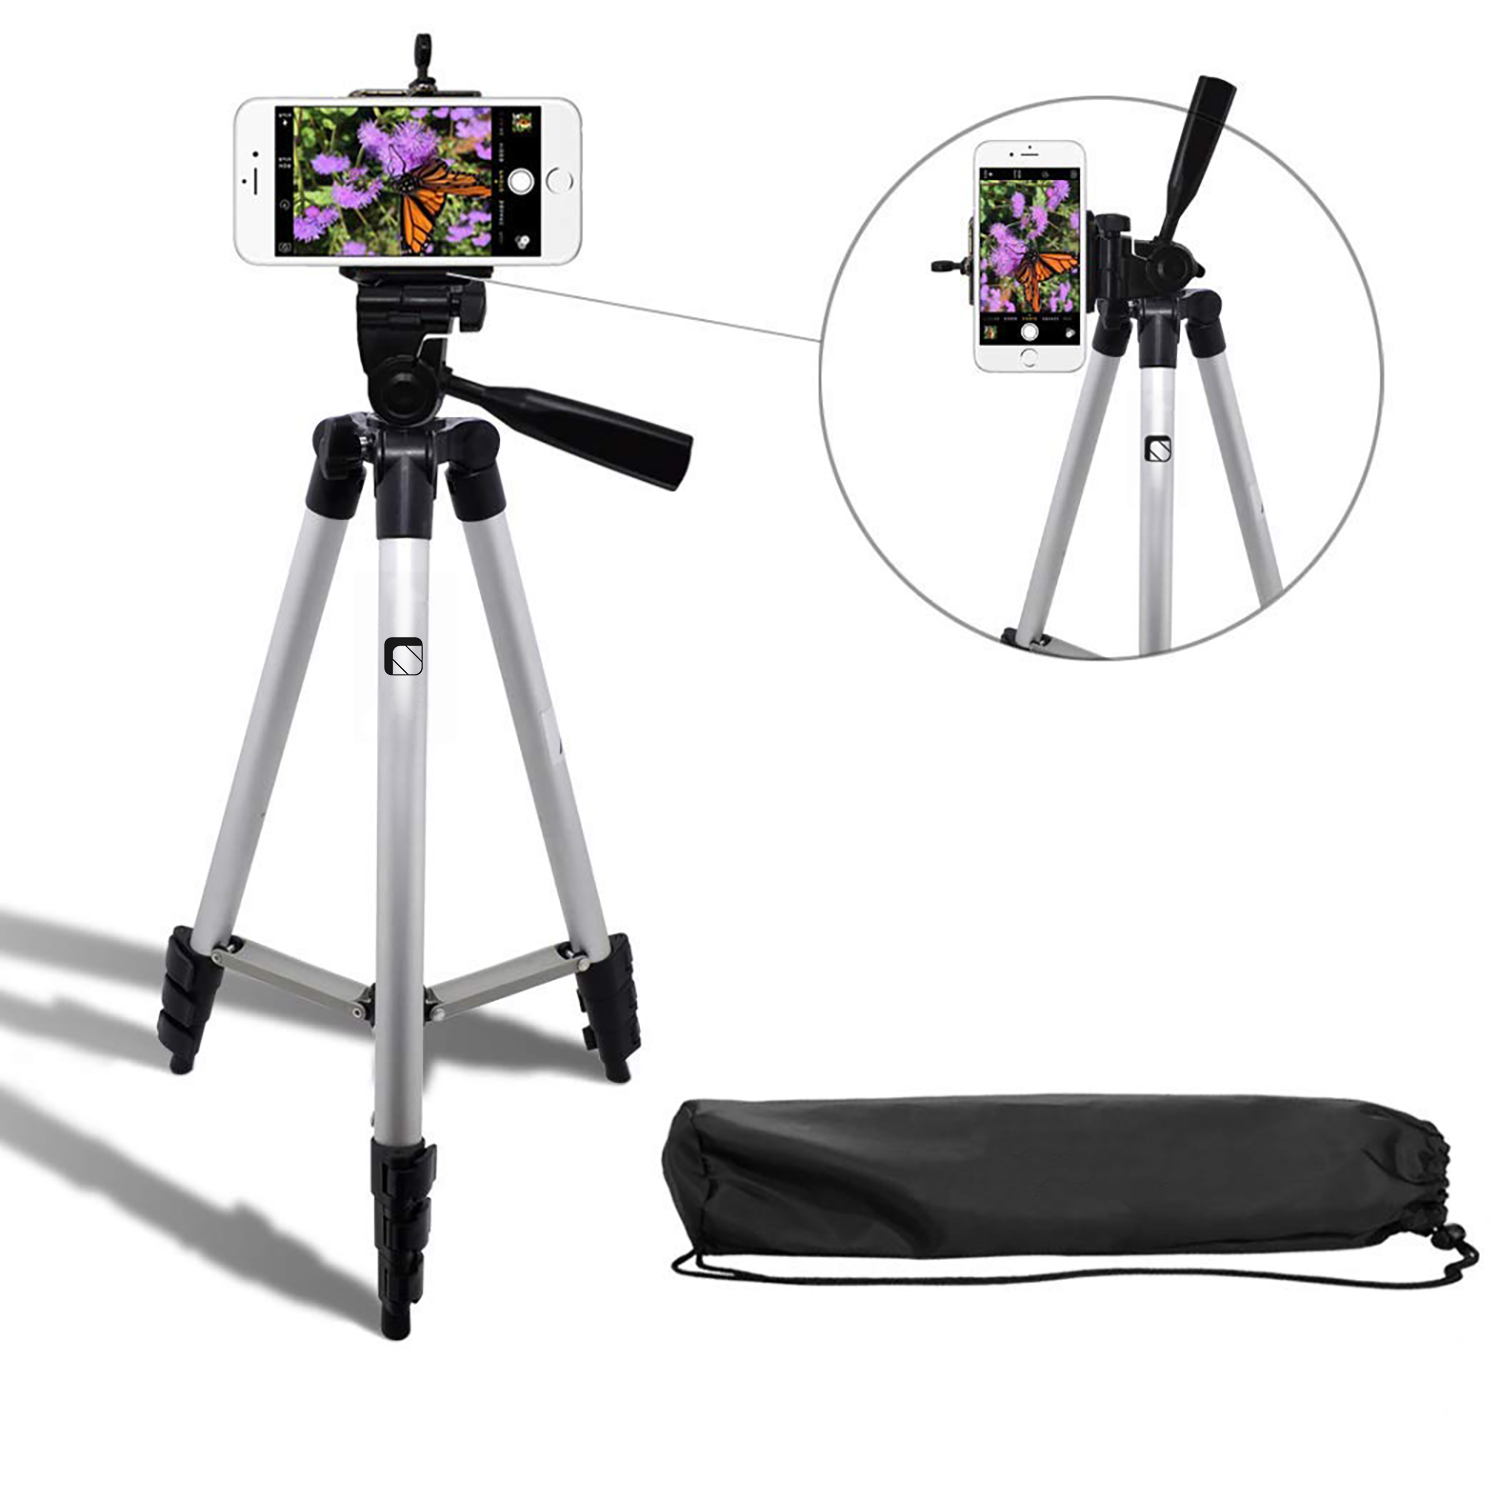 Syvo 3110 Foldable Camera Tripod With Mobile Clip Holder Bracket